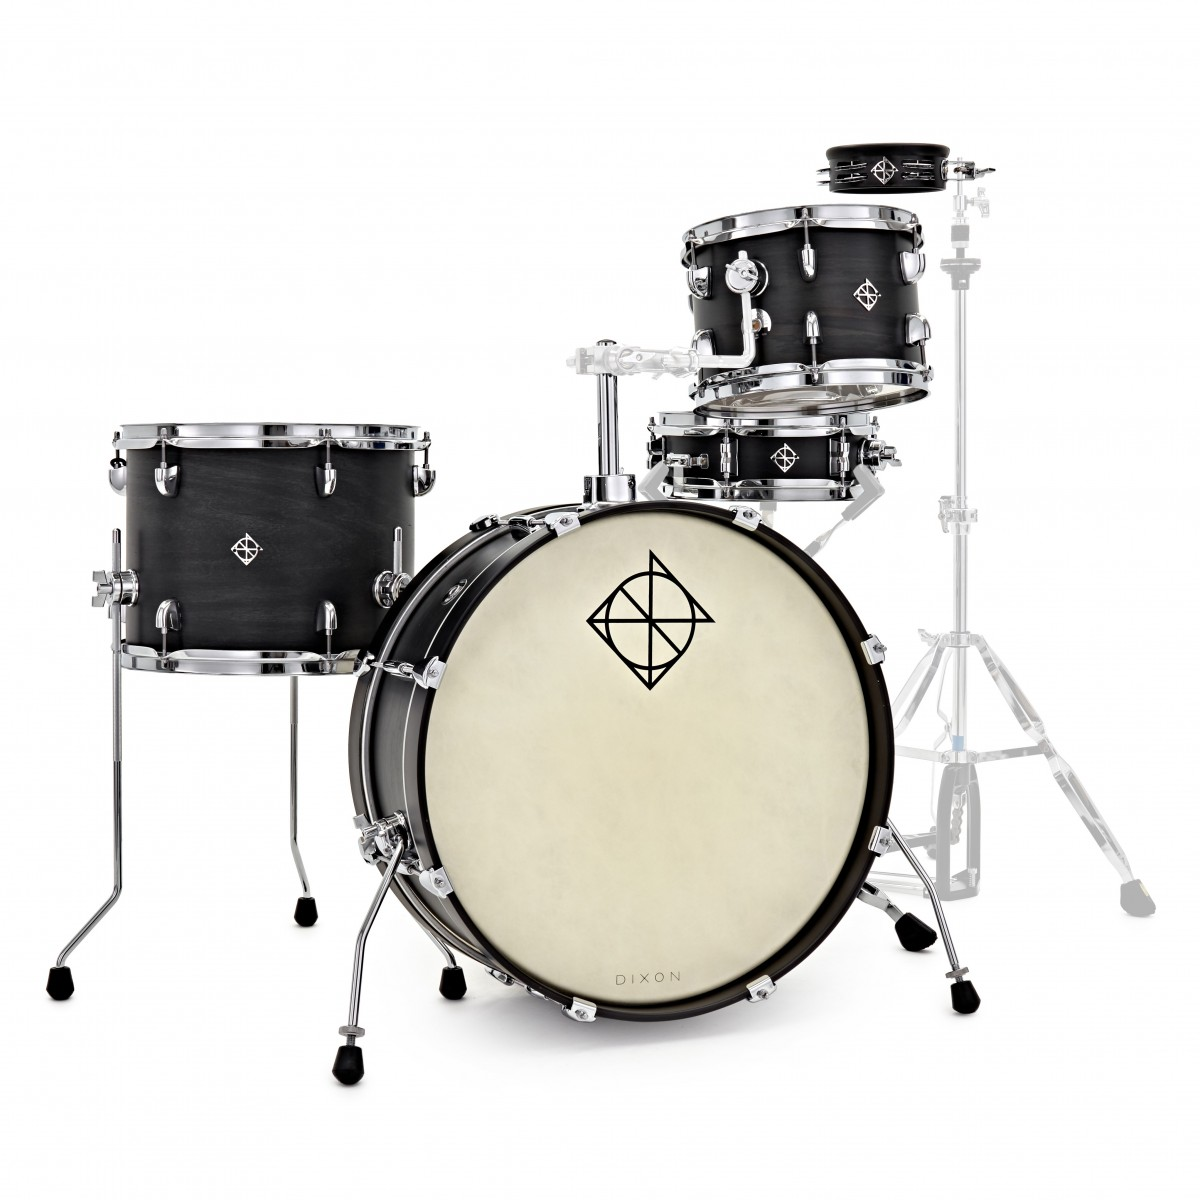 Dixon Drums 'Little Roomer' 20'' 5pc Shell Pack, Black Coal